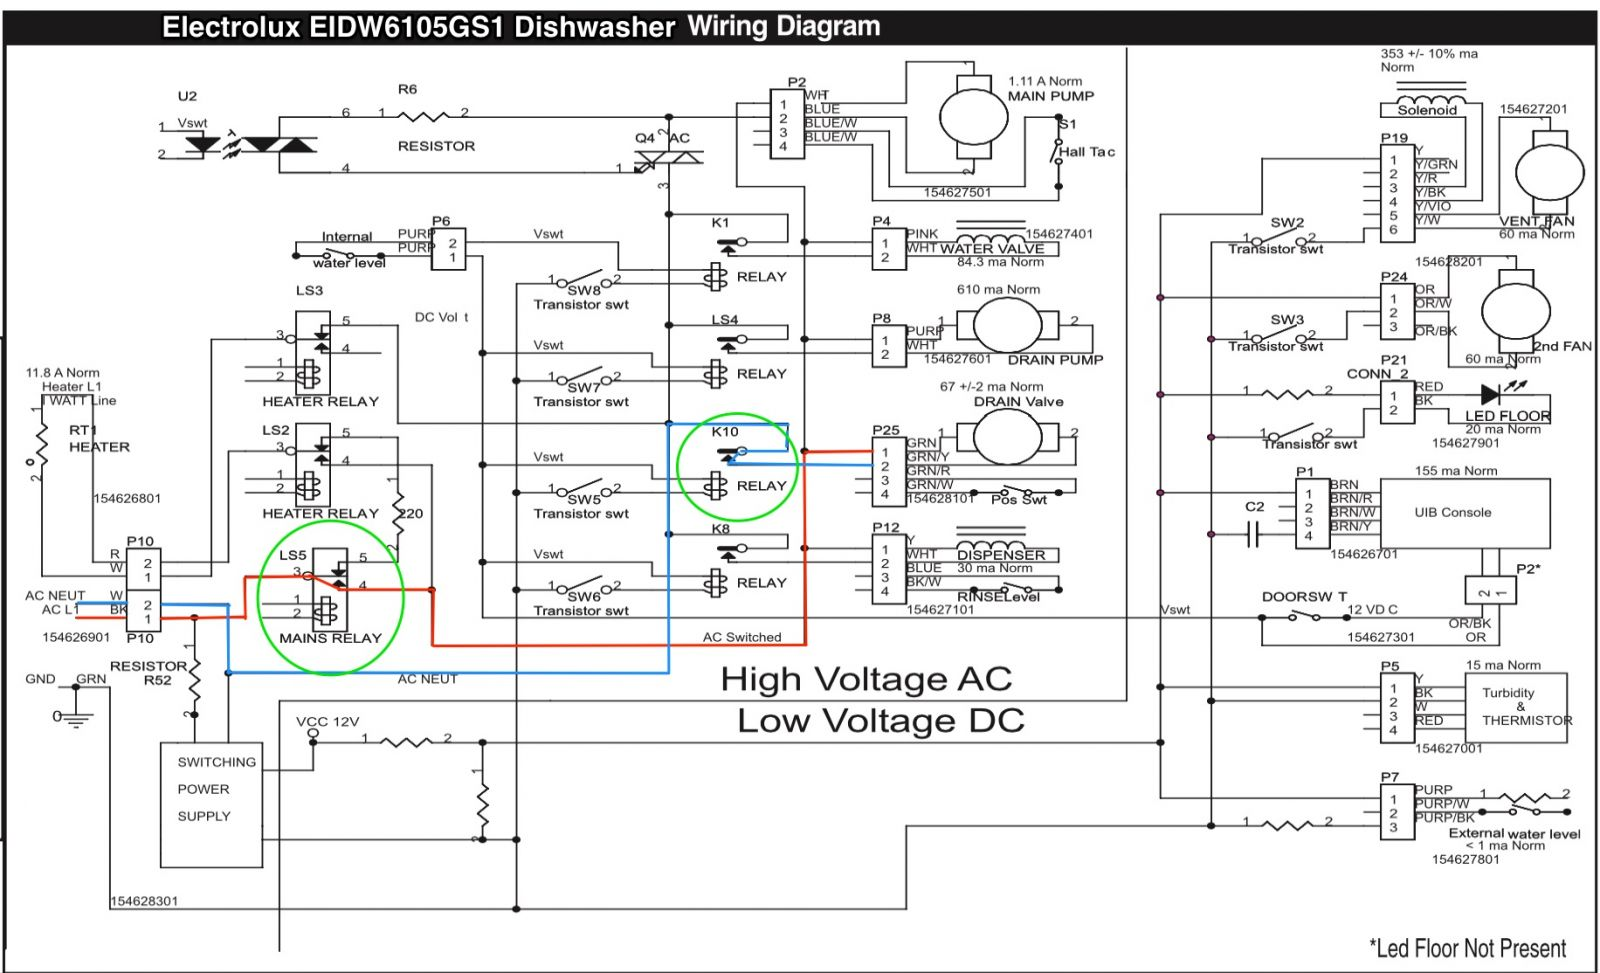 electrolux eidw6105gs1 dishwasher wiring diagram the appliantology rh appliantology org wiring diagram for dishwasher and garbage disposal wiring diagram samsung dishwasher